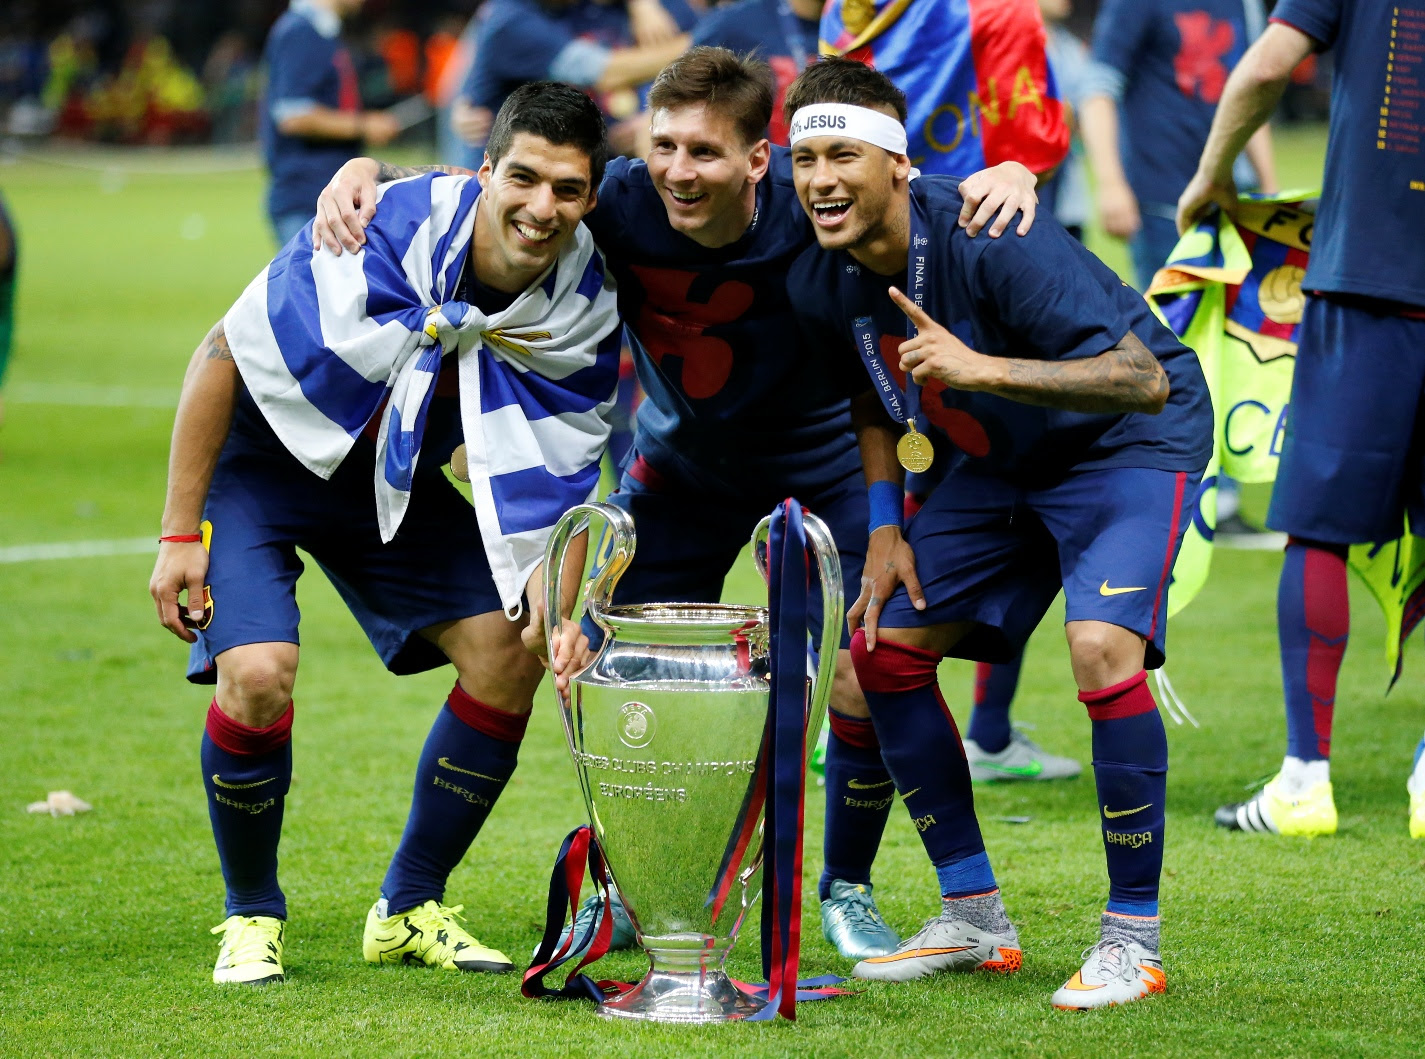 Lionel Mess, Luis Saurez and Neymar with Champions League Trophy